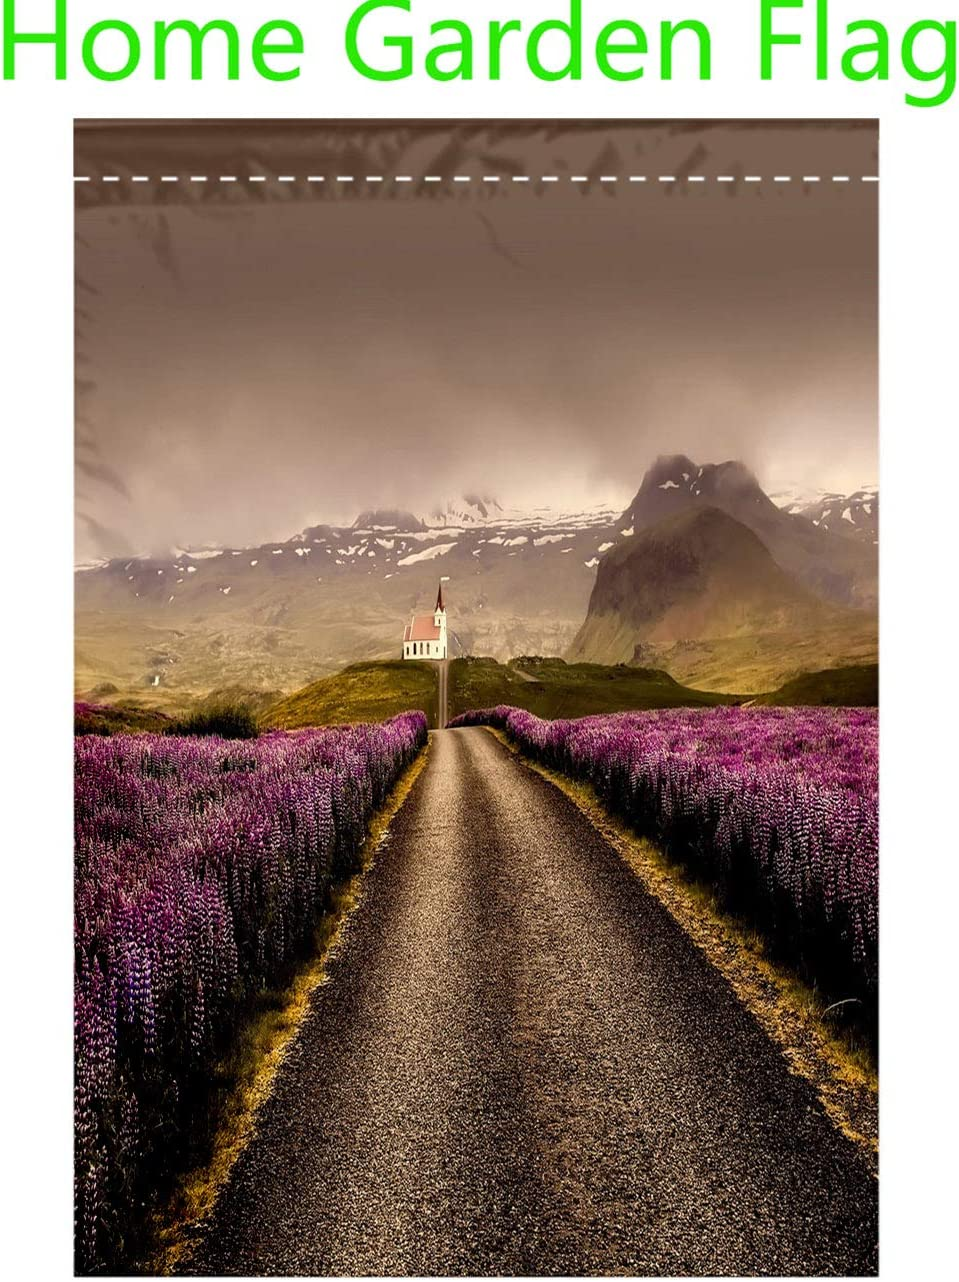 RLDRESS Home Welcome Garden Flag Vertical Double Sided Iceland Flowers Landscape Road Nature Outdoor Rural Colorful Outdoor Flags Festive Flags for Lawn Yard Decor-Polyester 20x36 inch